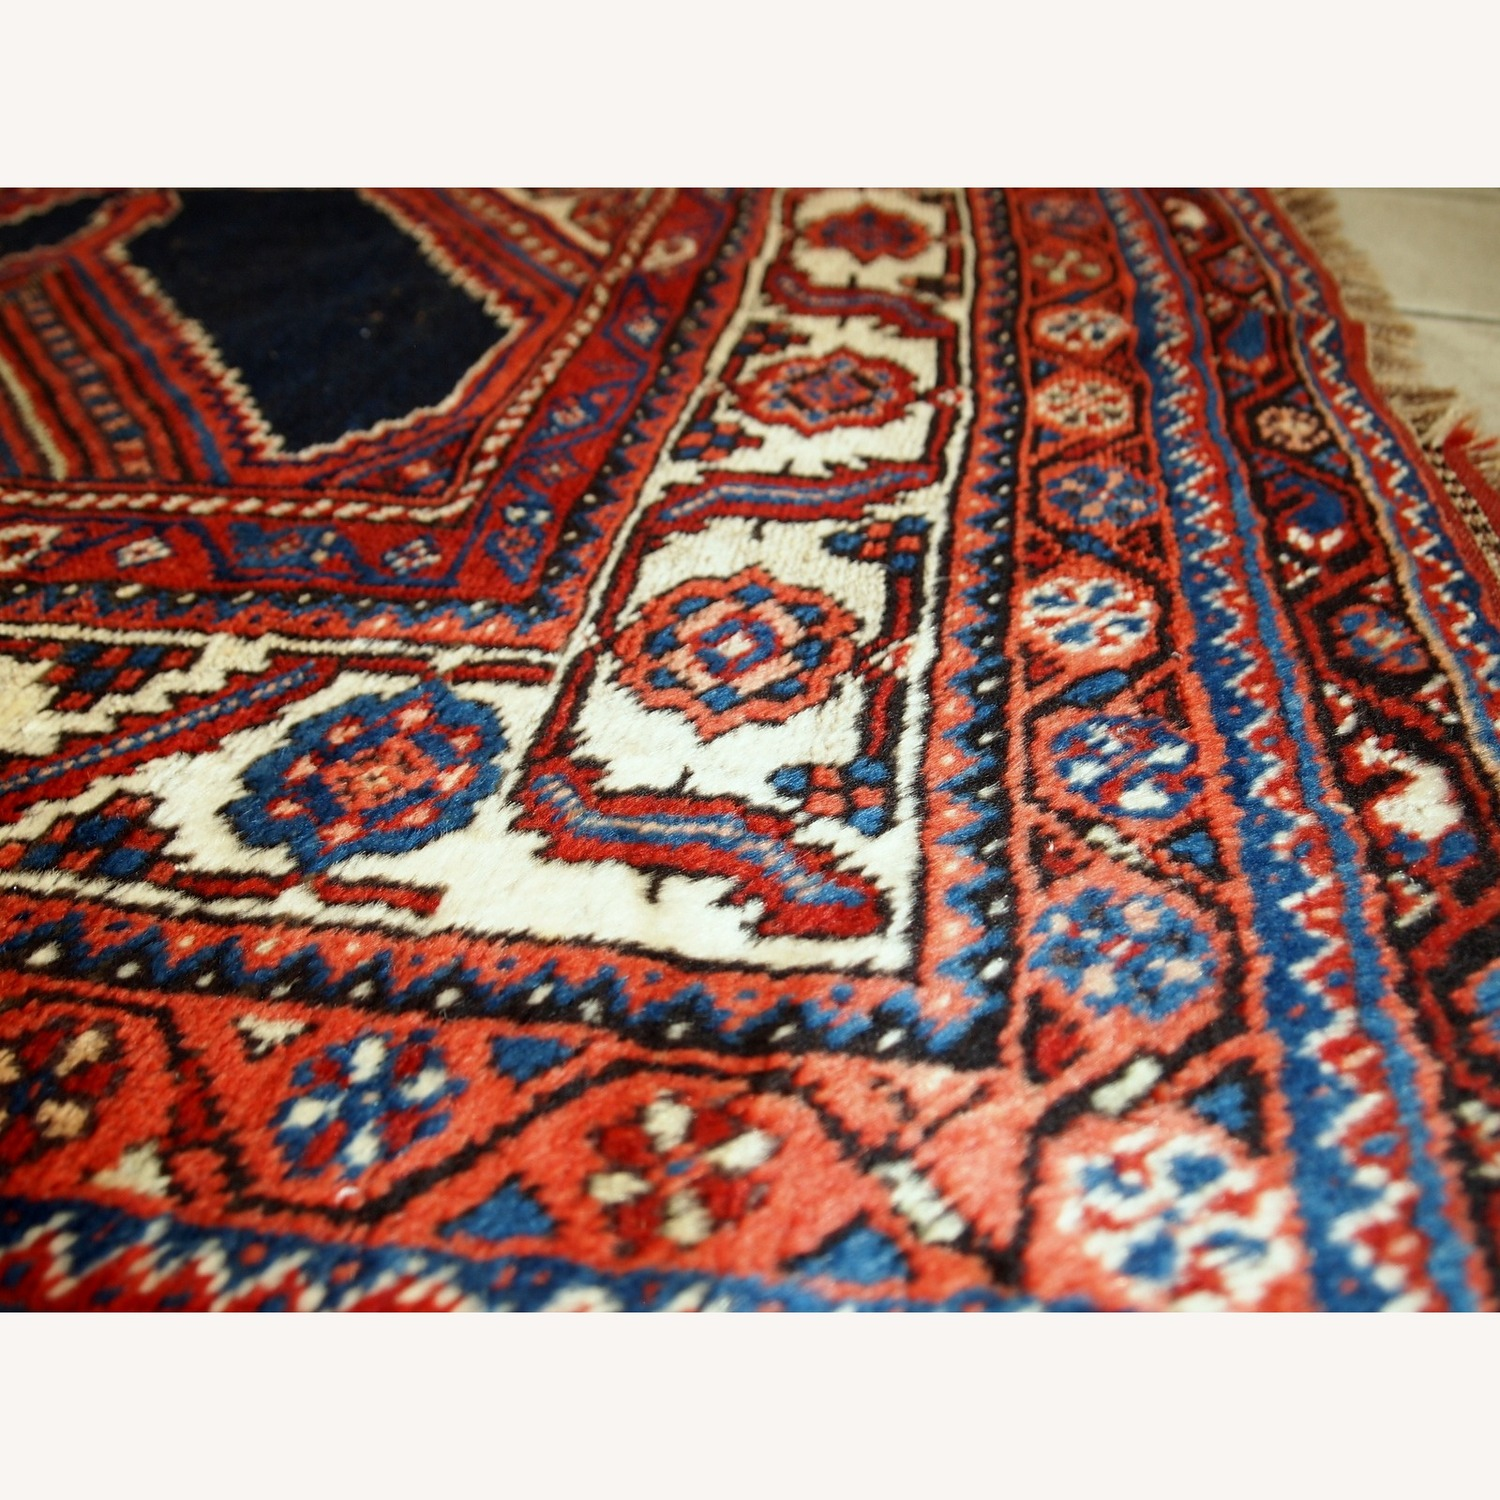 Handmade Antique Distressed Persian Shiraz Rug - image-9